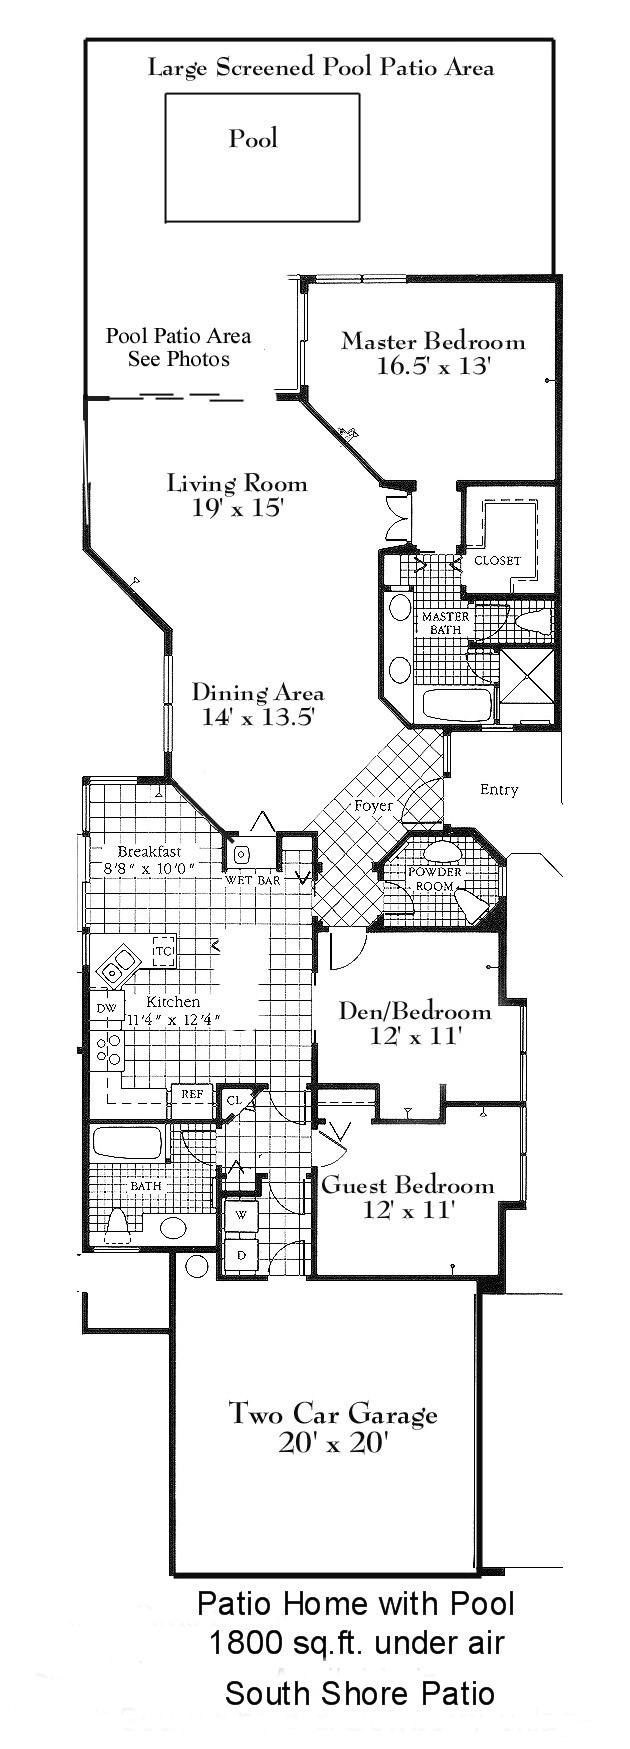 Patio home floor plans free gurus floor for Patio home floor plans free